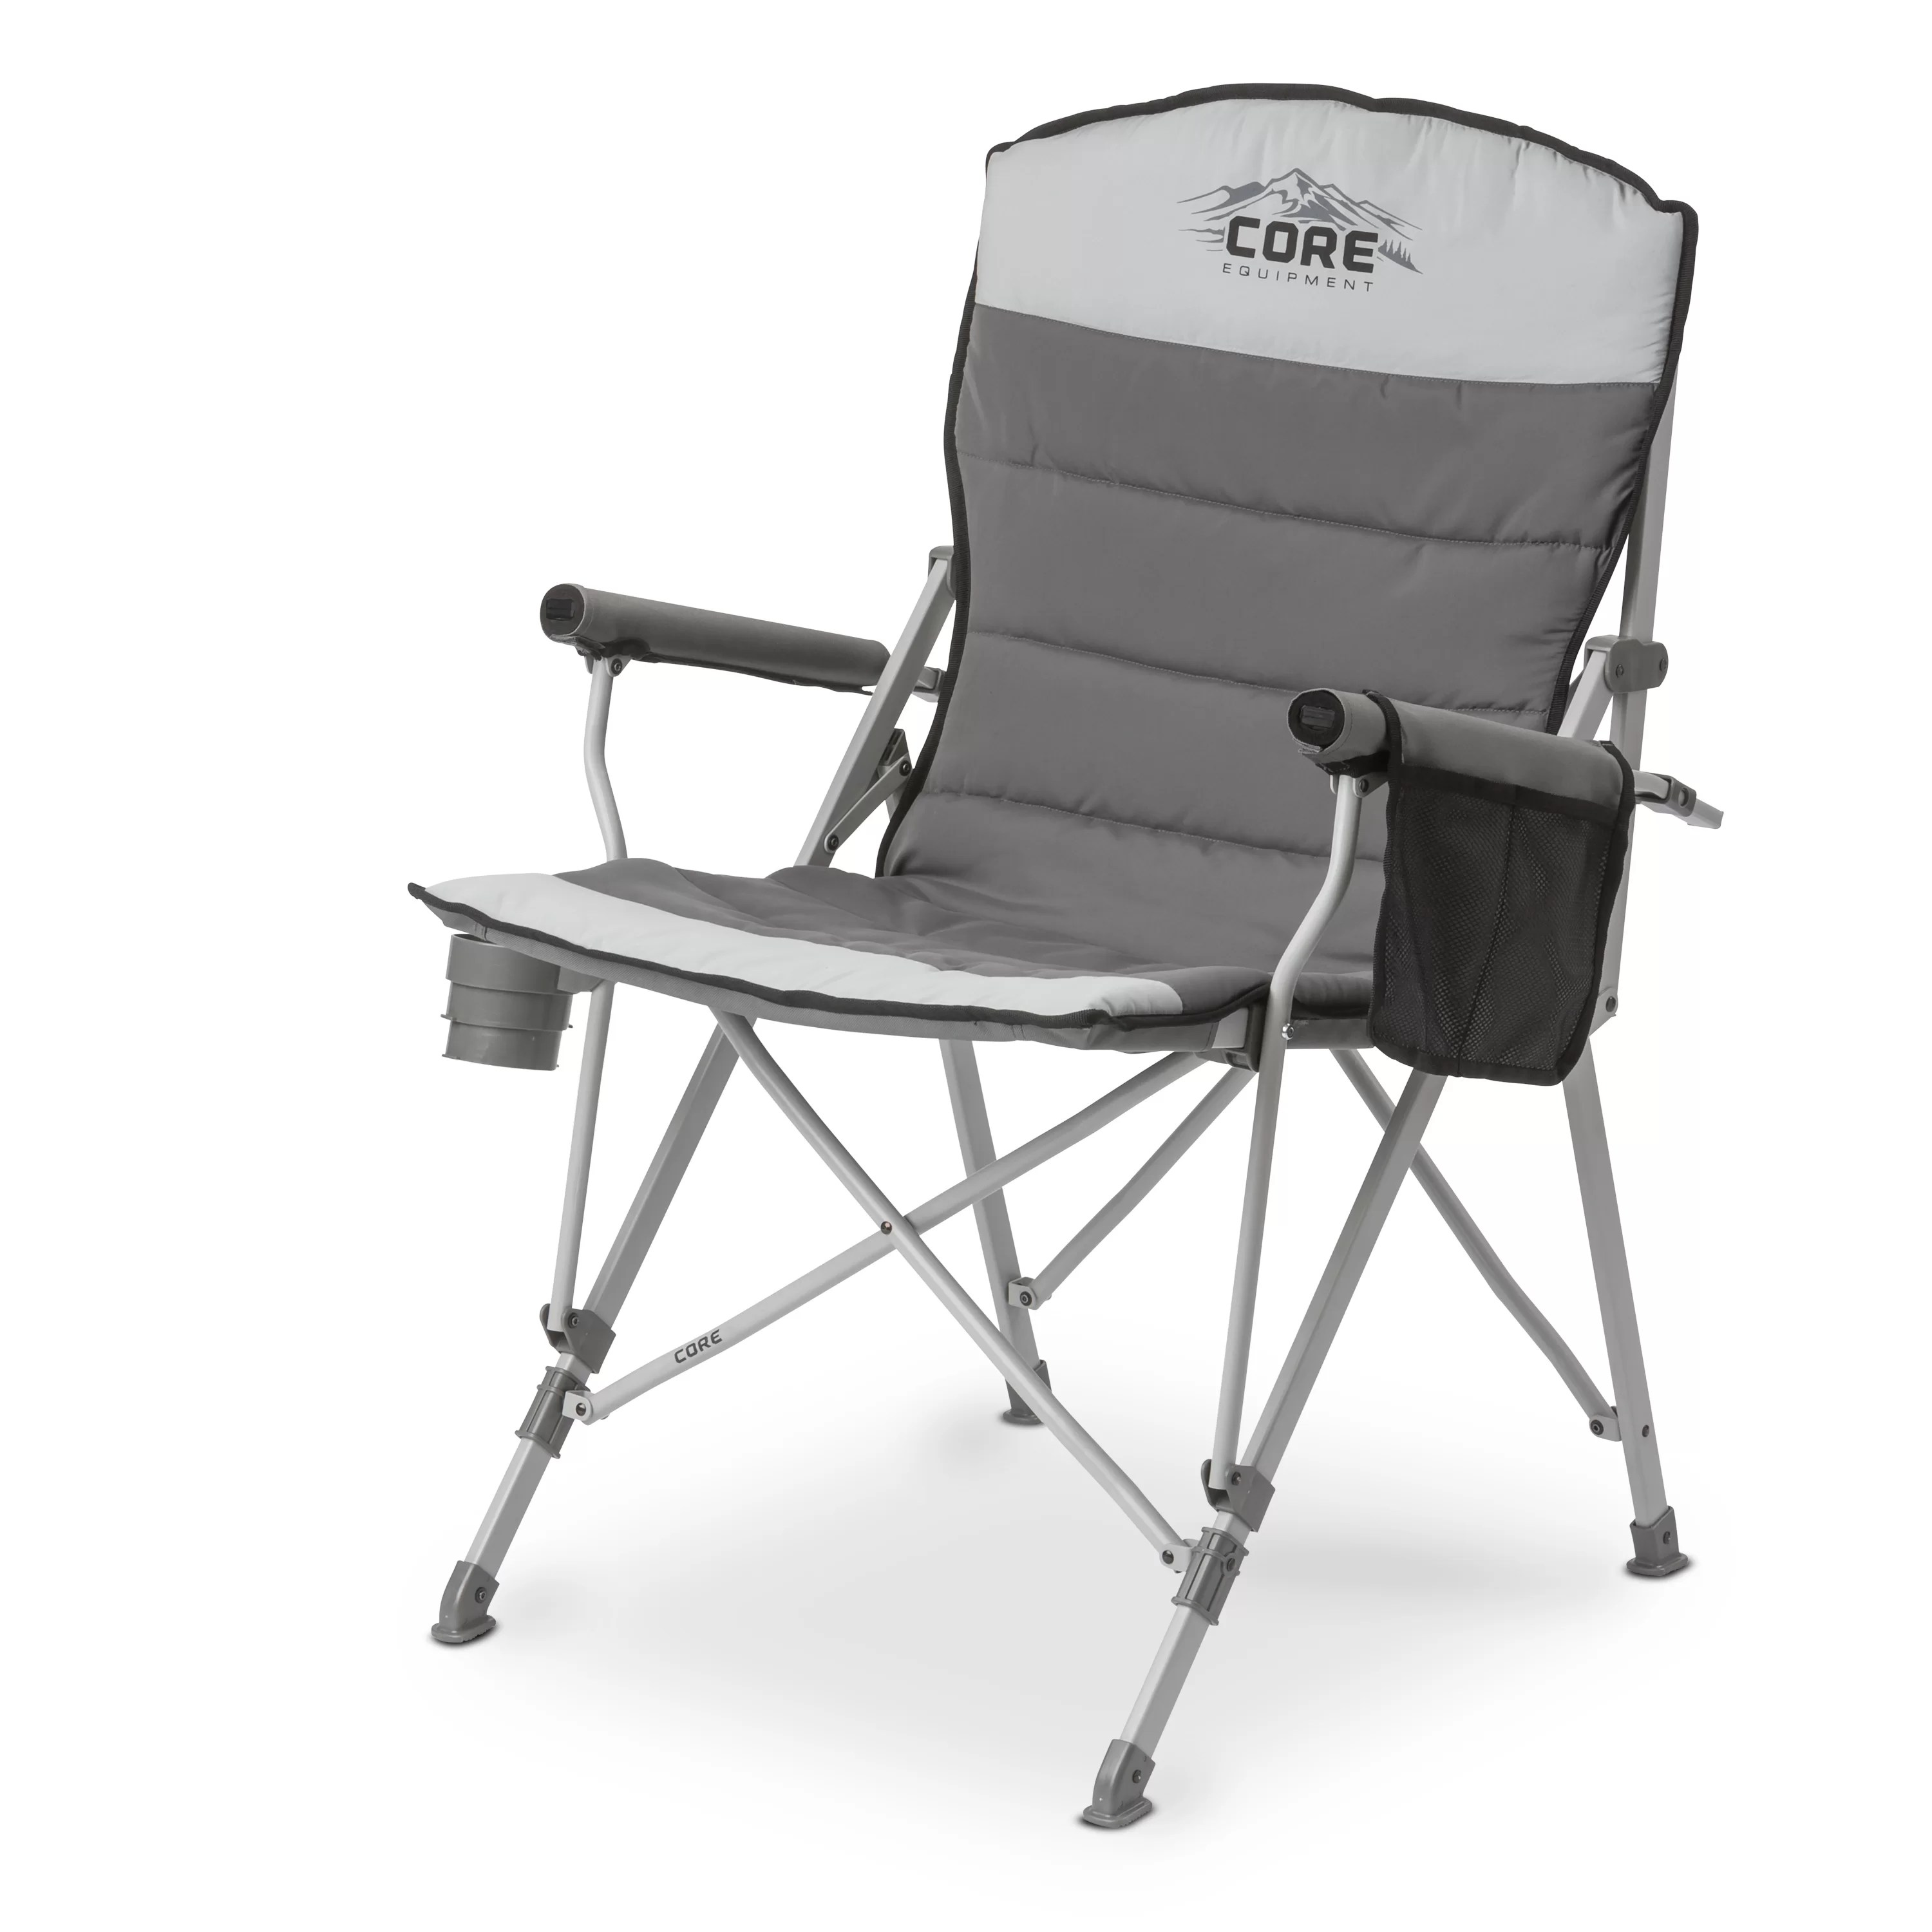 Collapsible Chair Folding Camping Chair